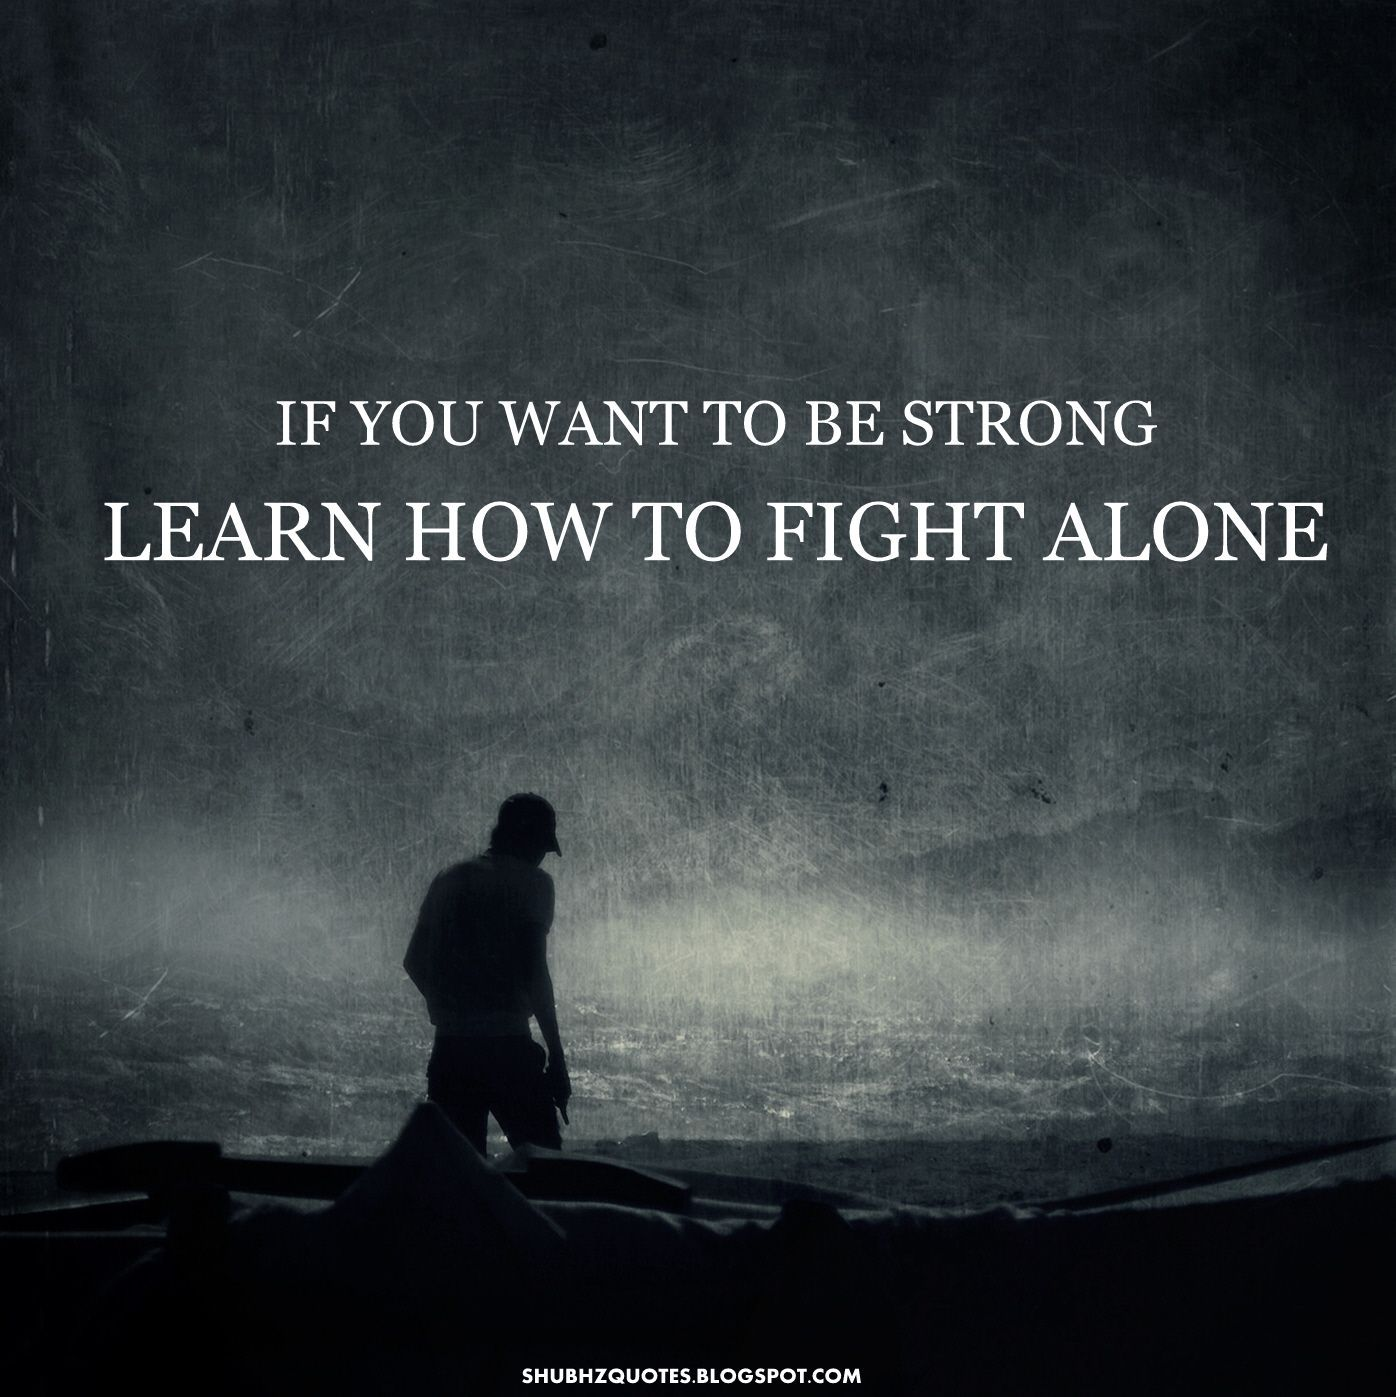 Quotes About Fighting: Fight For It Quotes